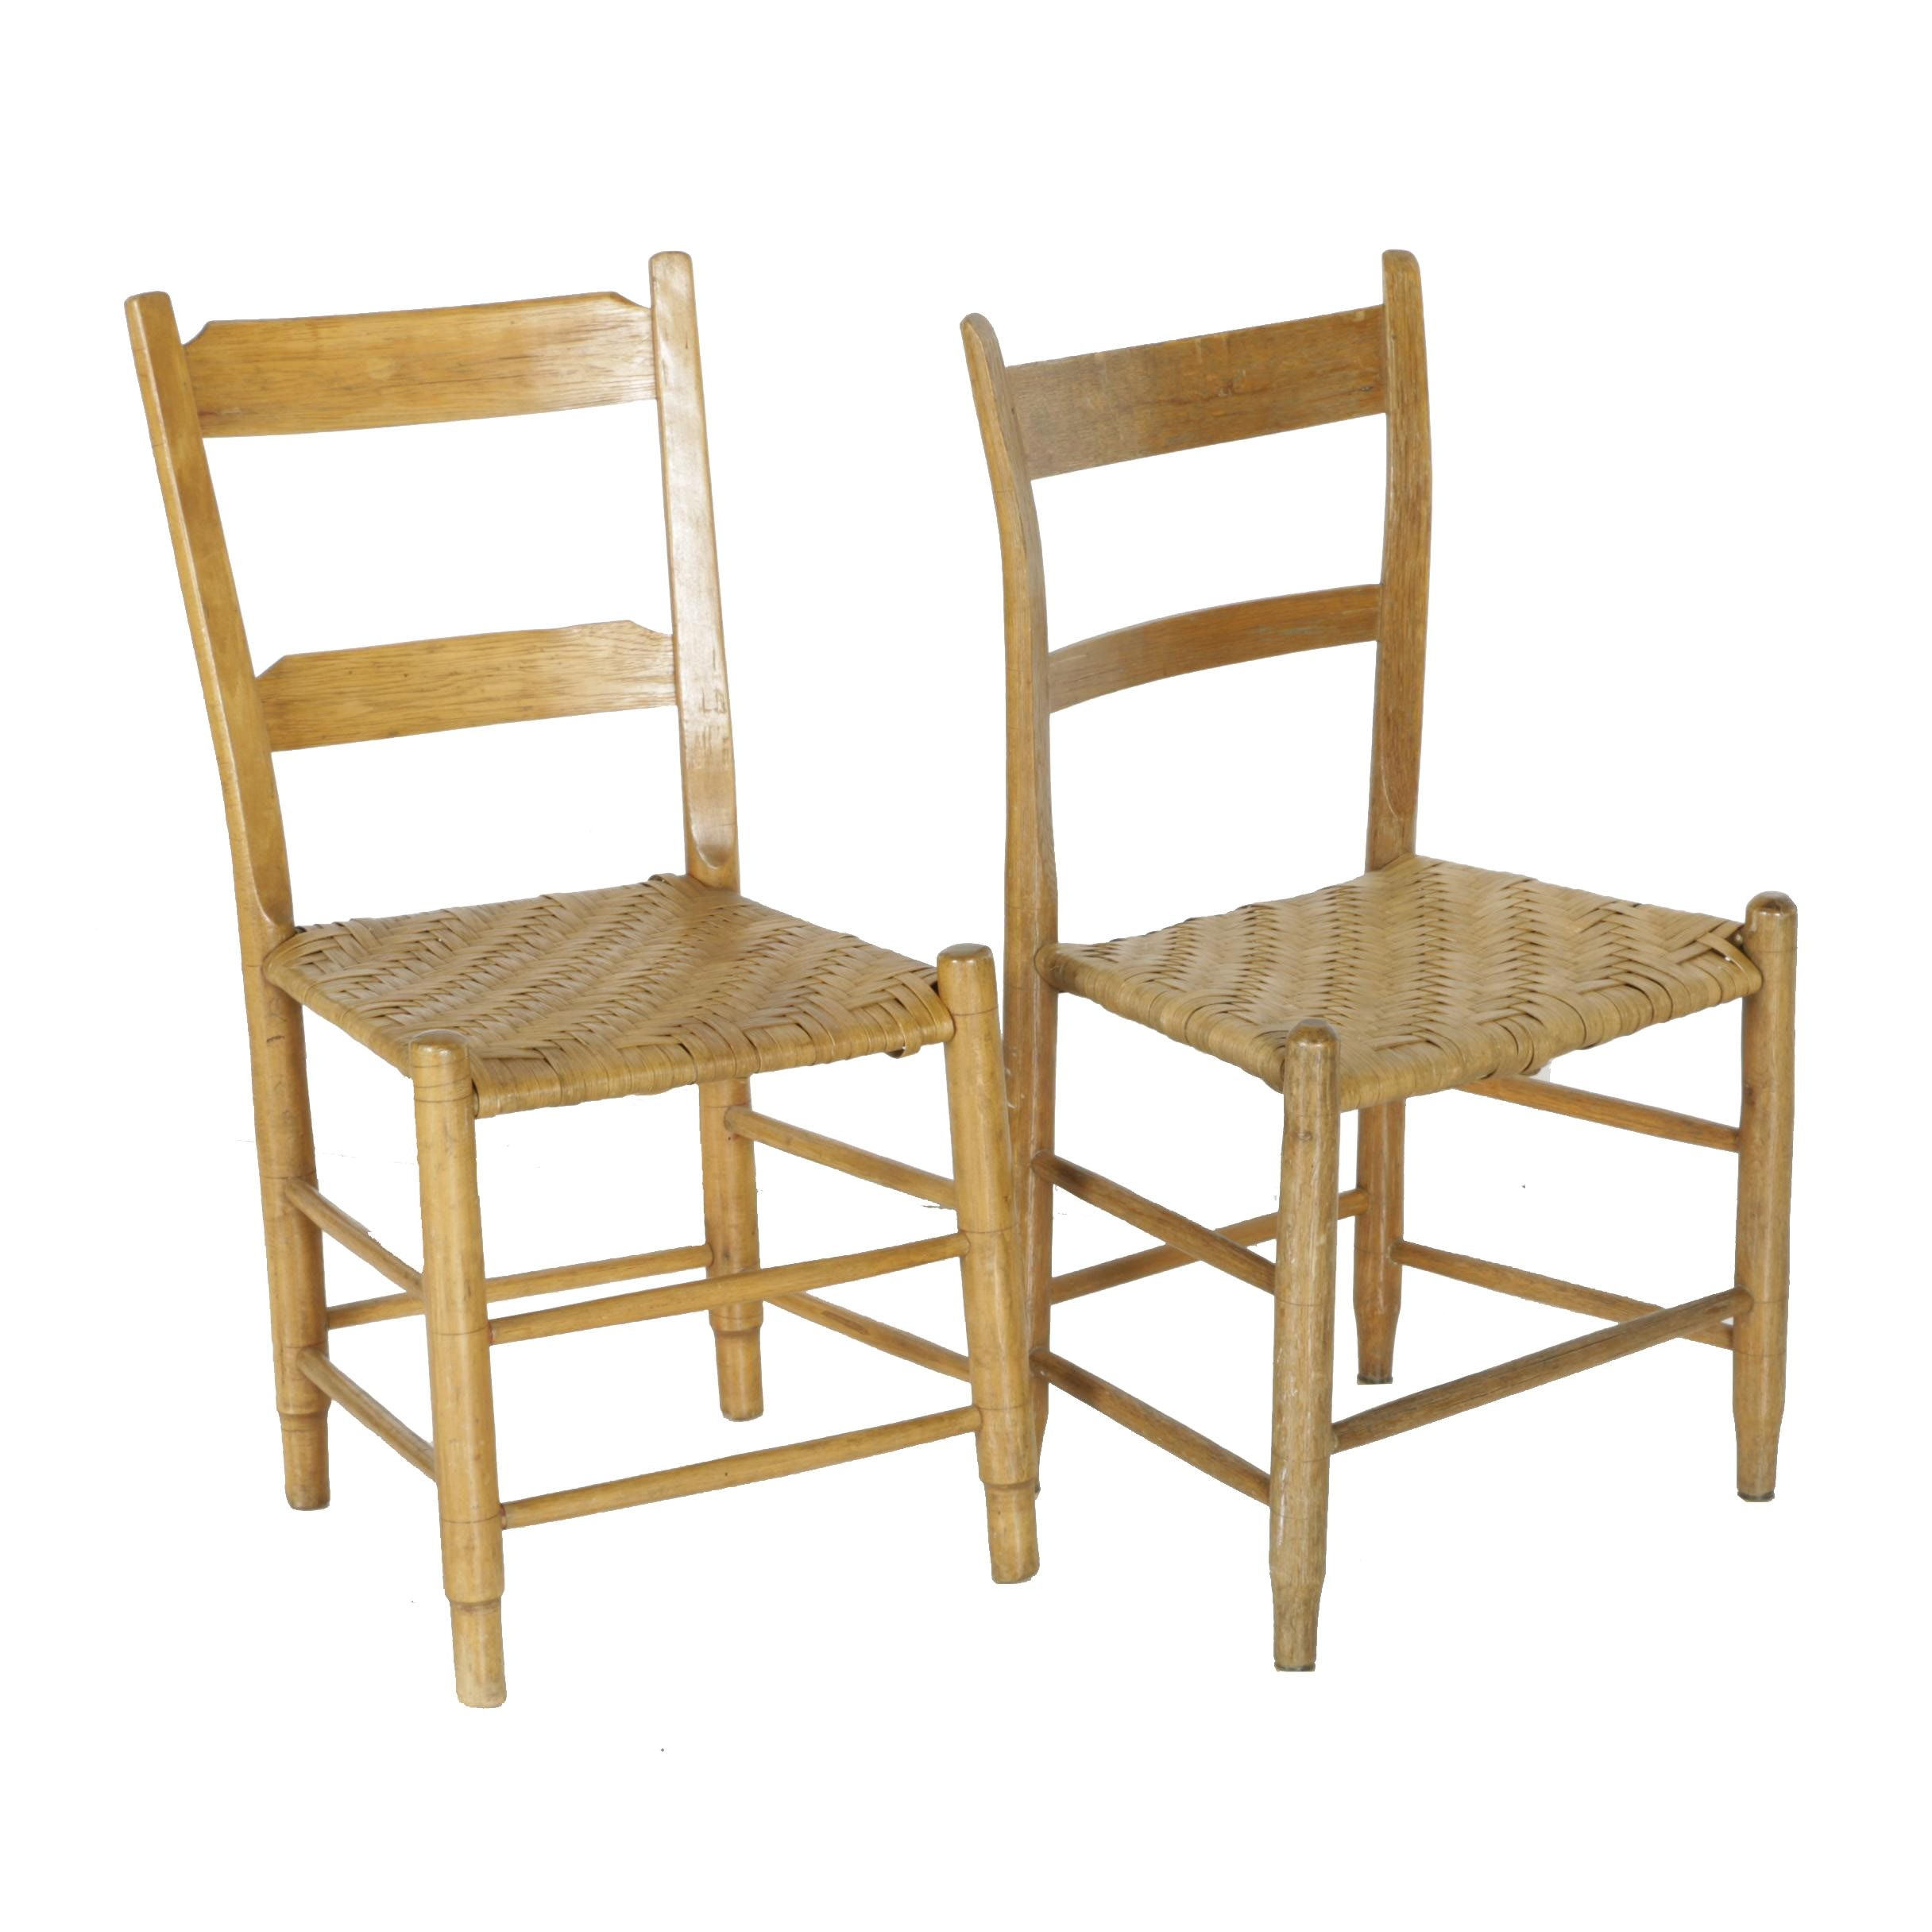 Pair of Vintage Ladderback Chairs